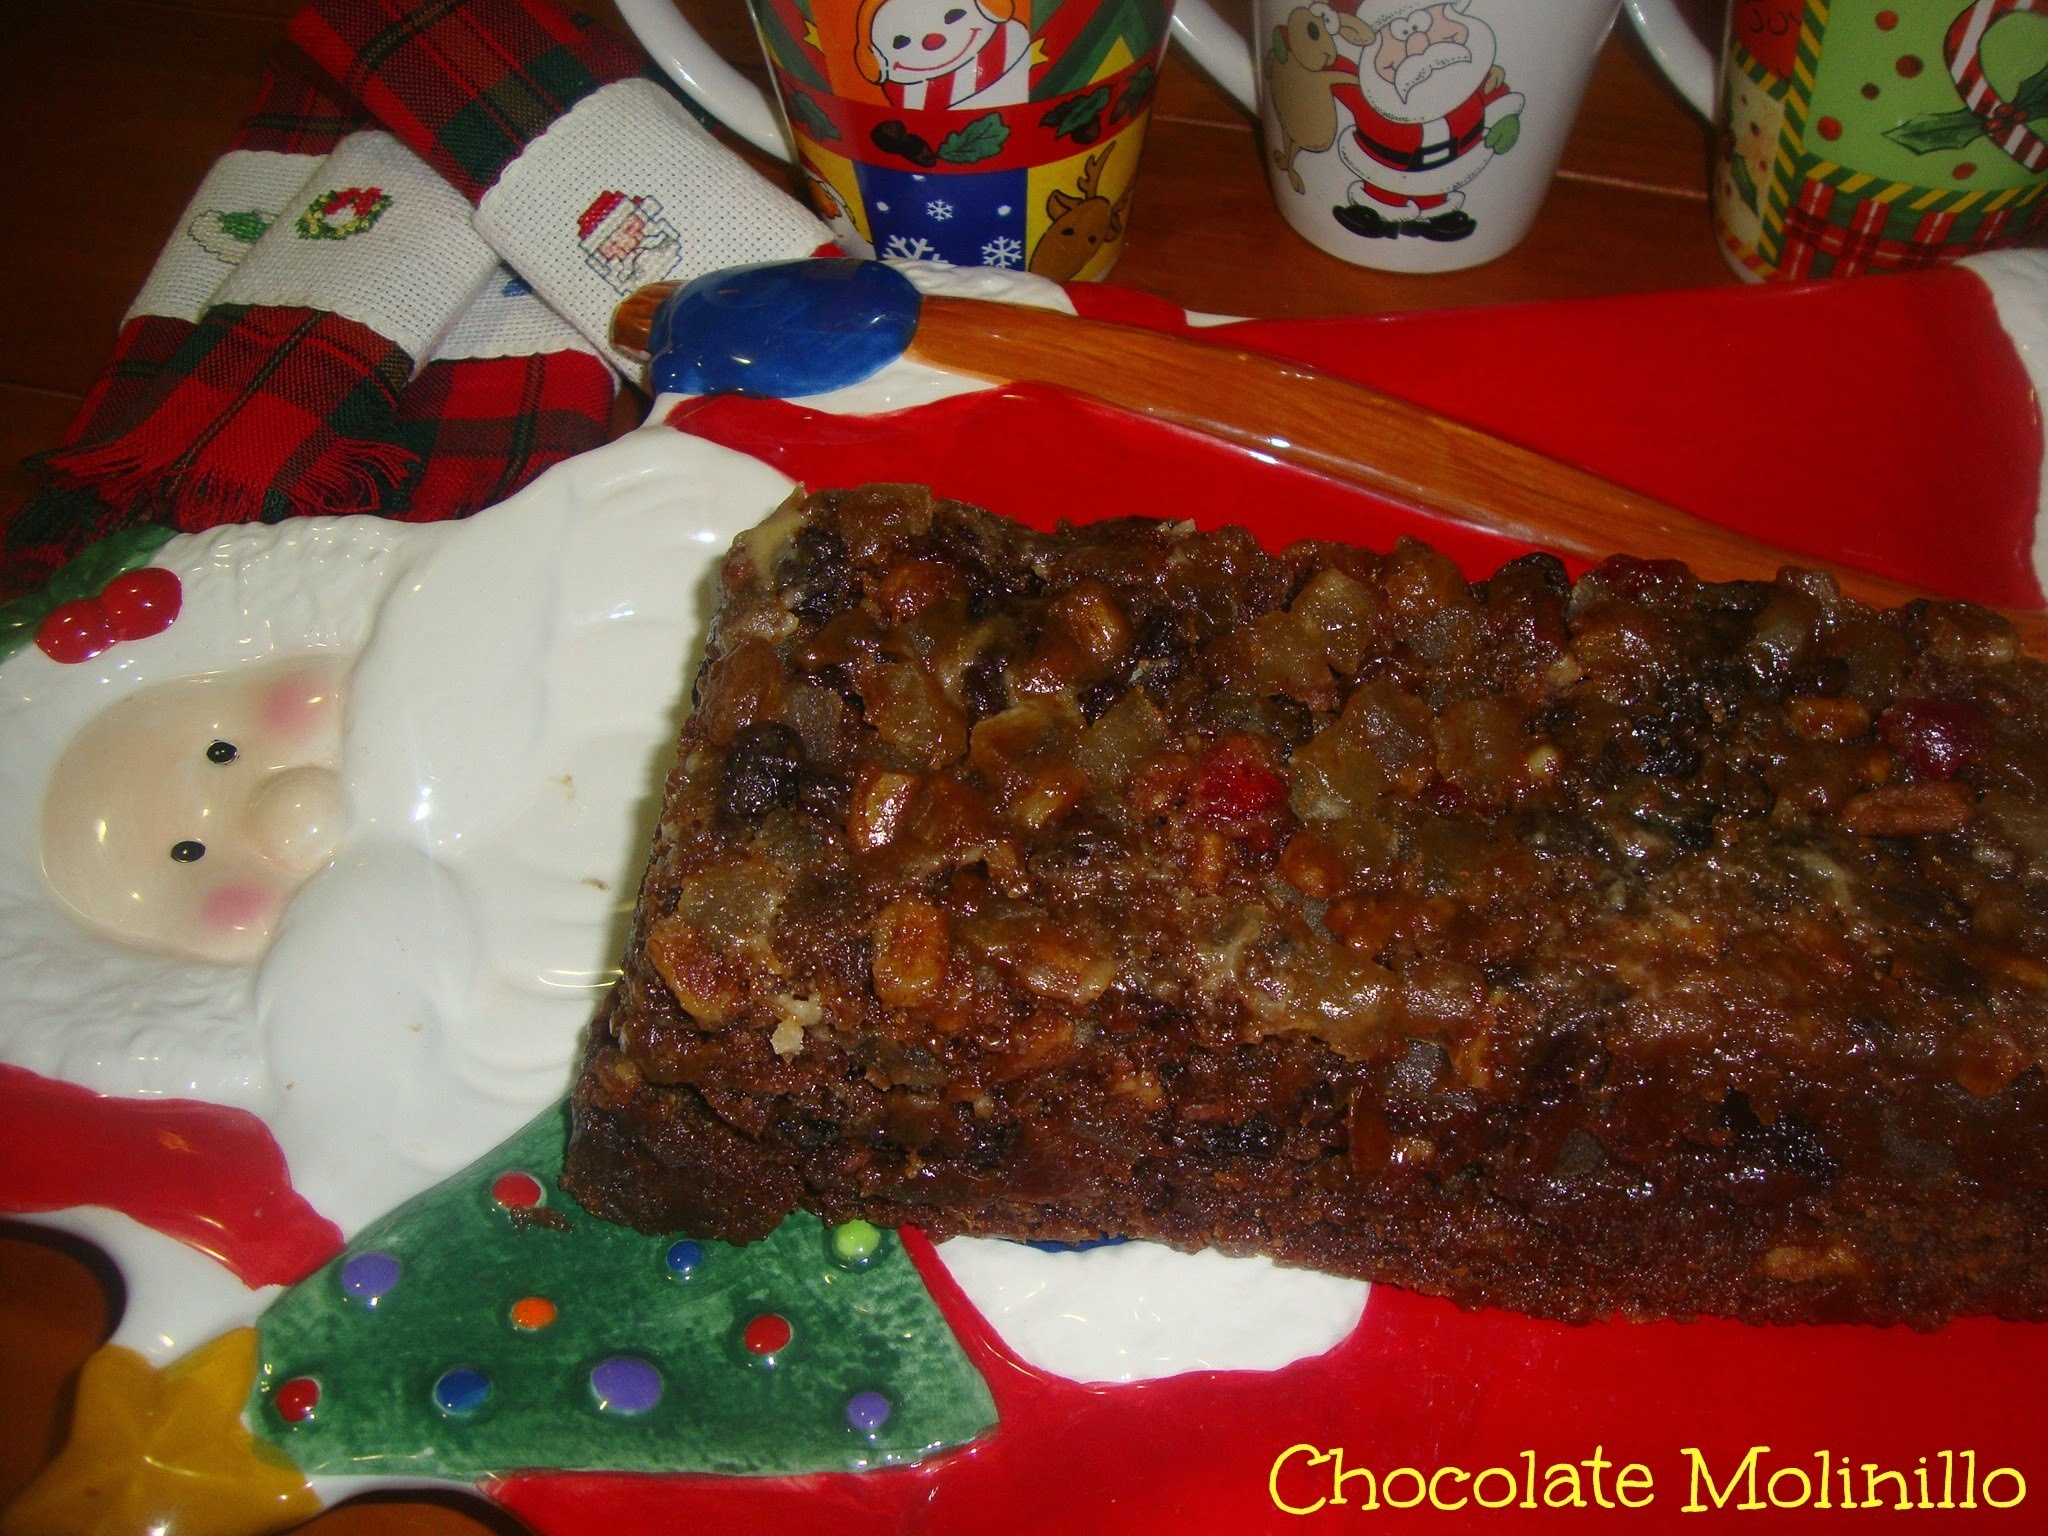 Fruit Cake al estilo Chocolate Molinillo